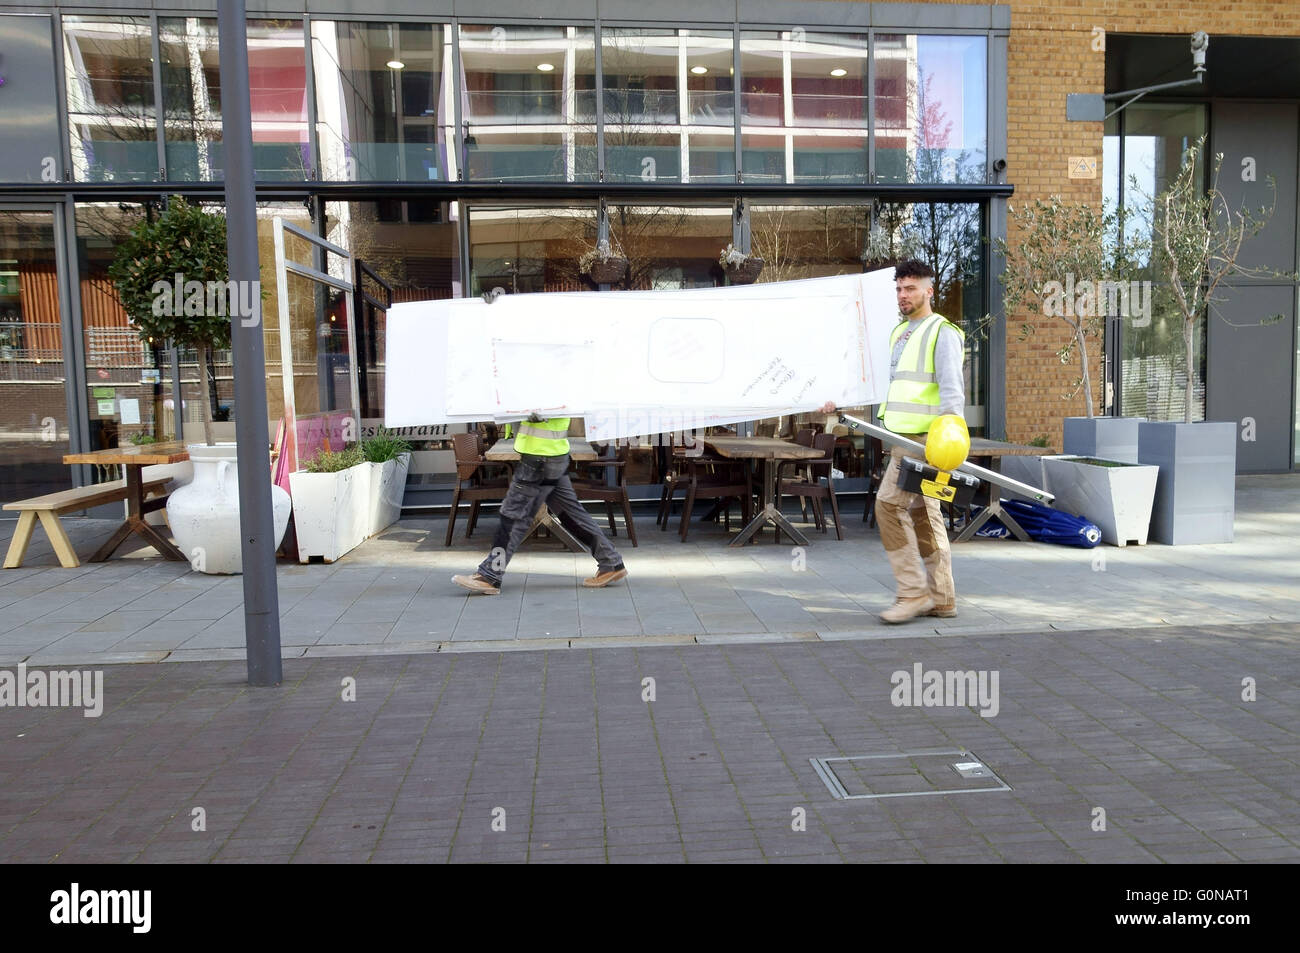 Gentrification in Dalston, East London - builders are a common sight - Stock Image